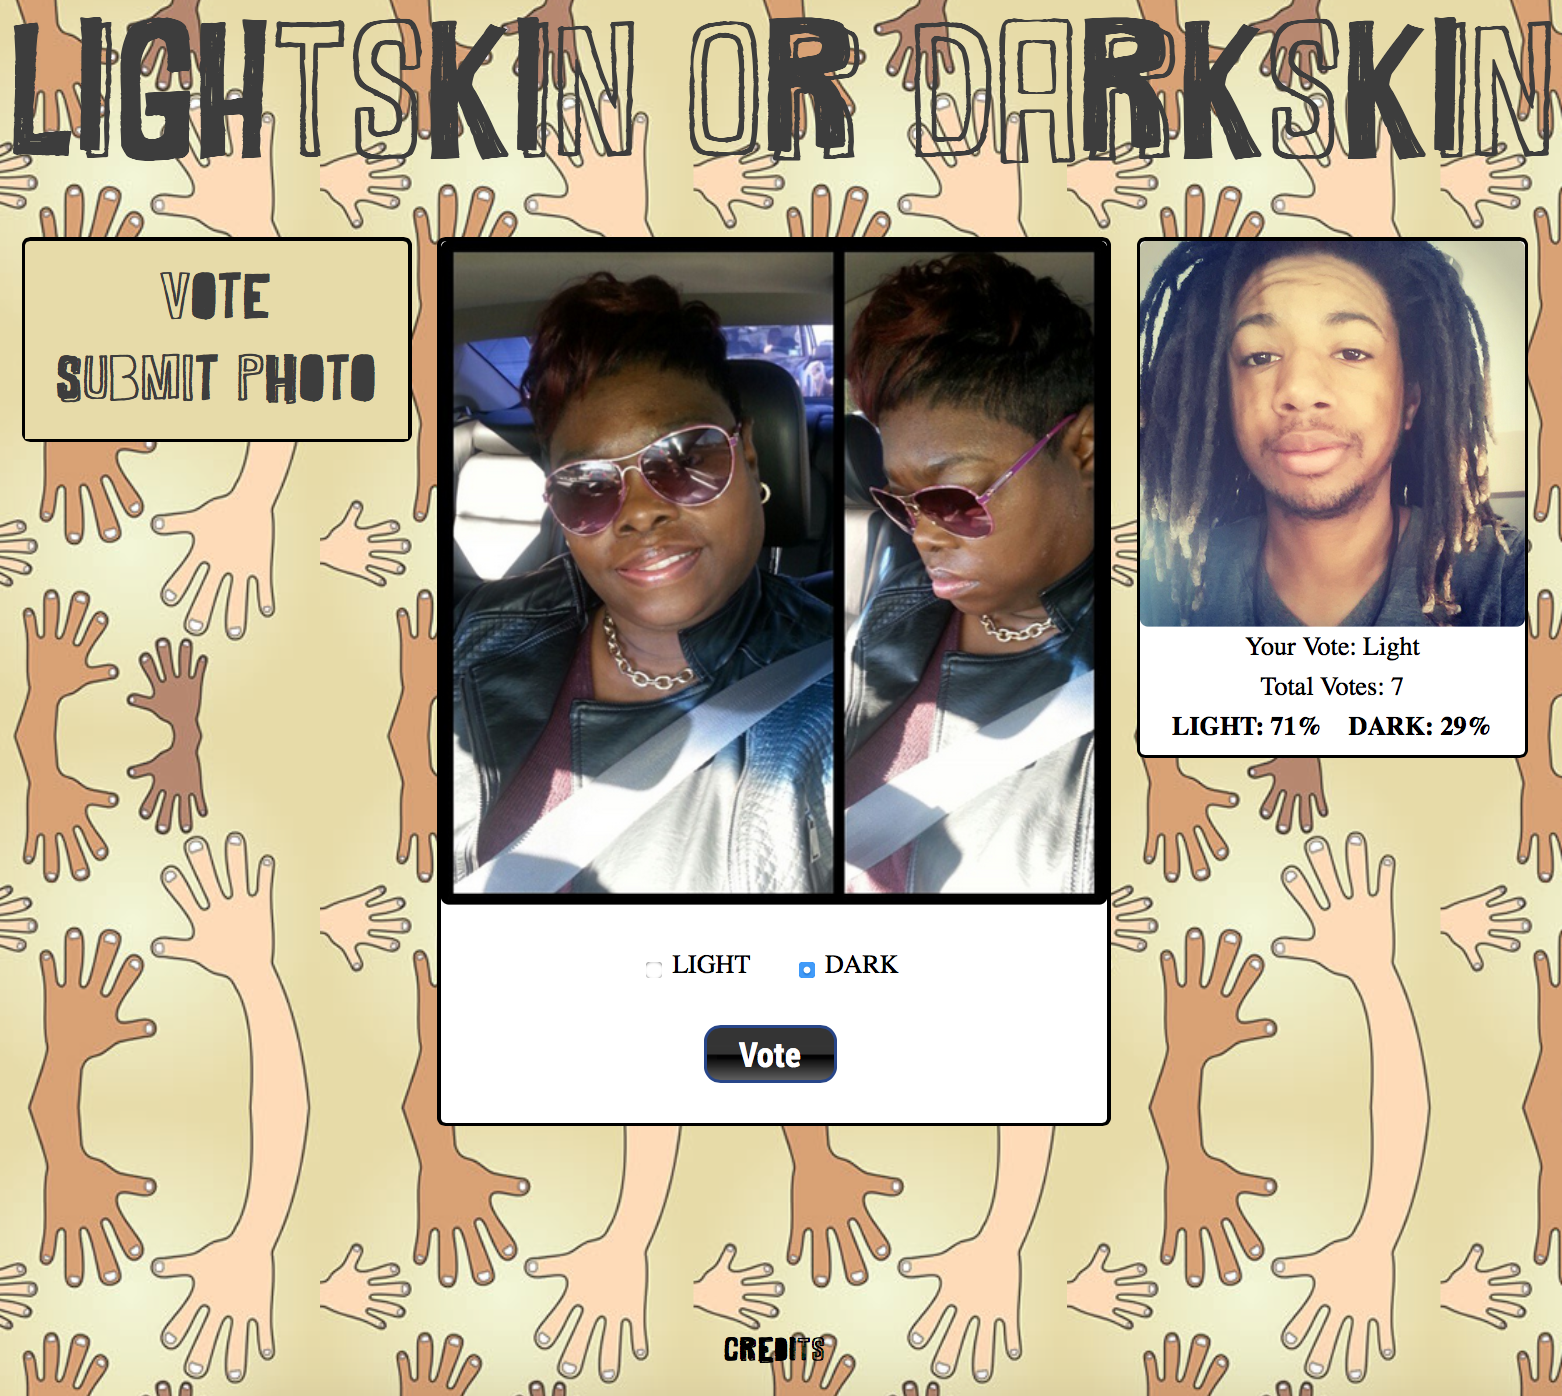 A screenshot from Nate Hill's lightskinordarkskin.com (via lightskinordarkskin.com)